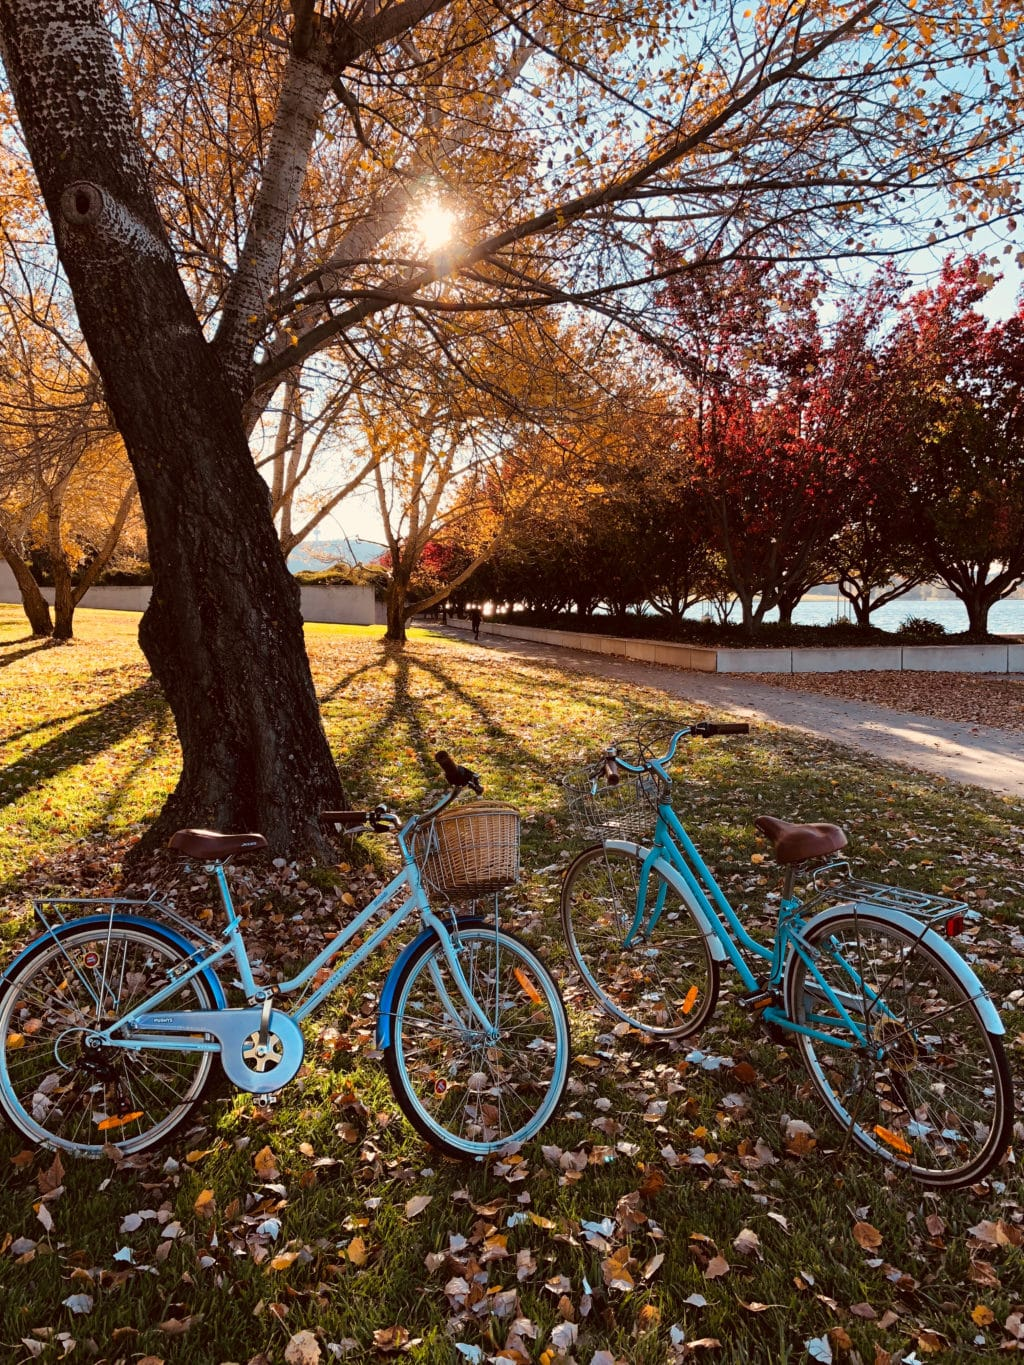 Two bright blue bikes sitting in a park next to a tree with full autumn colors list post with 2020 hashtags and black Friday Hashtags